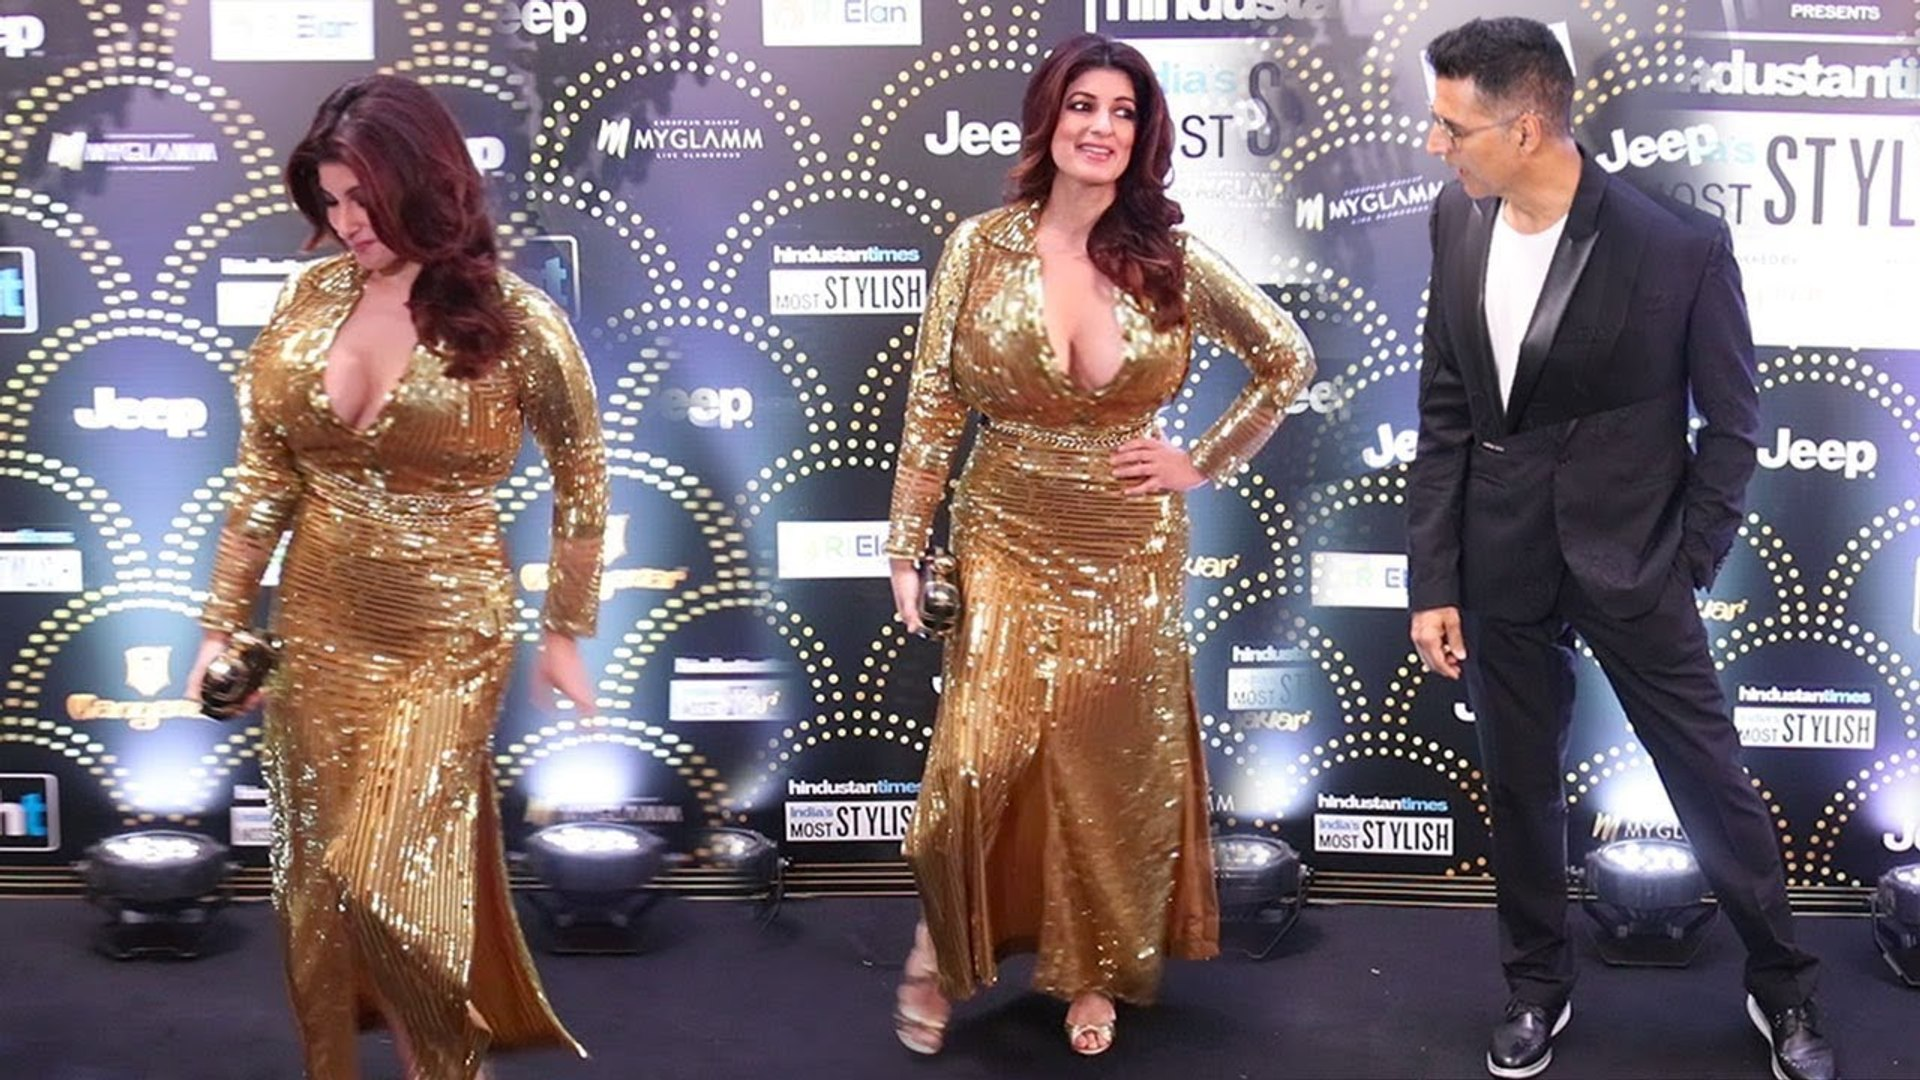 Akshay Kumar With Wife Twinkle Khanna At Red Carpet Of HT Most Stylish Awards 2019 Wid Other Celebs